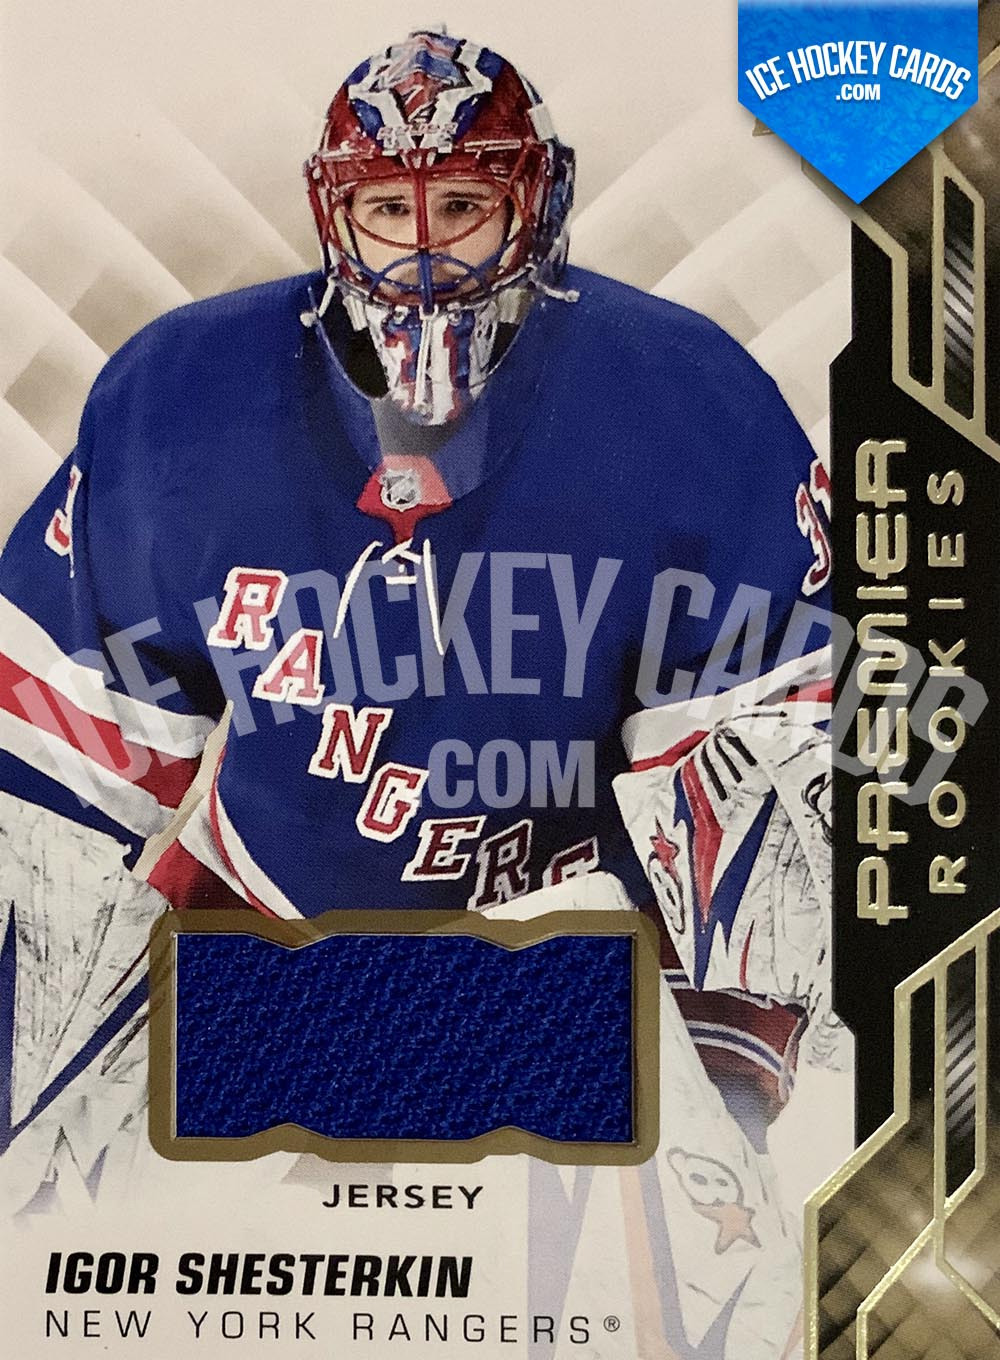 Upper Deck - Premier Hockey 2019-20 - Igor Shesterkin Premier Rookies Patch Card